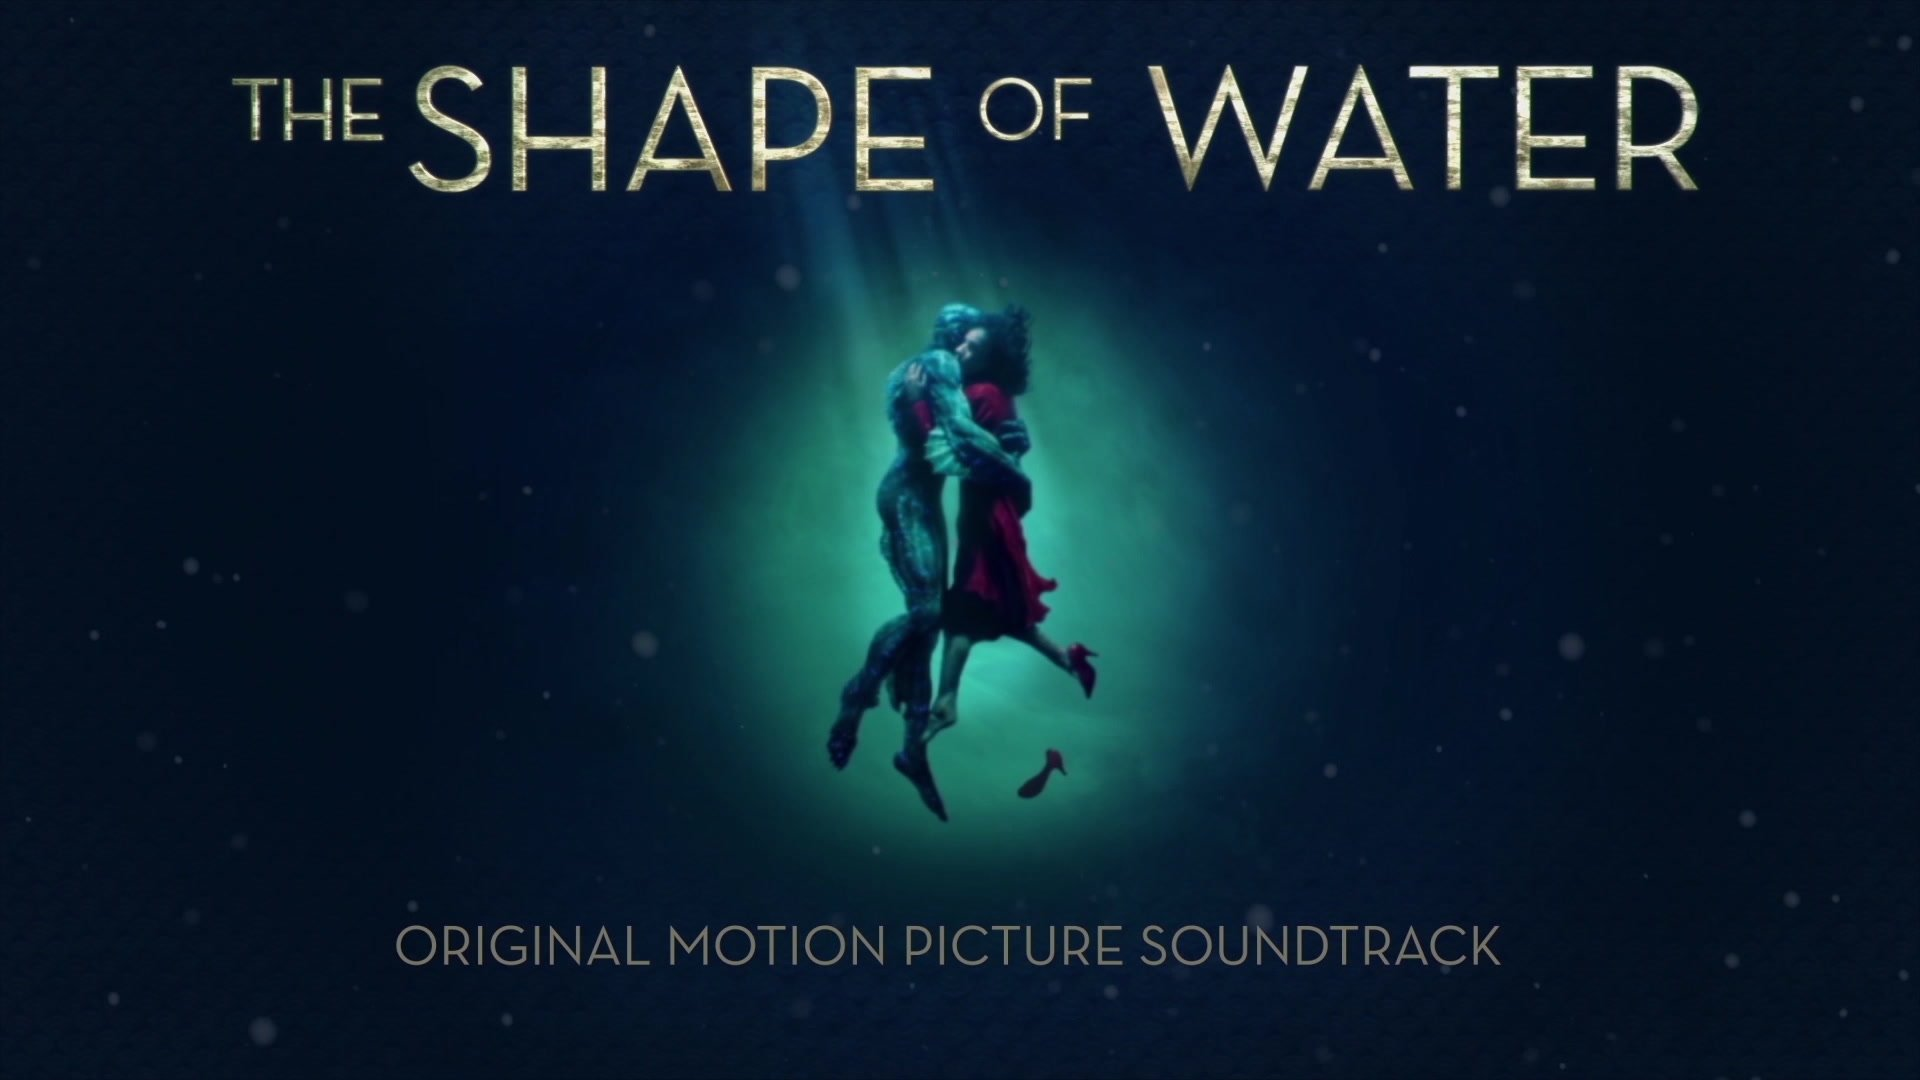 Calendar Quotes From The Shape Of Water : The shape of water thecinema